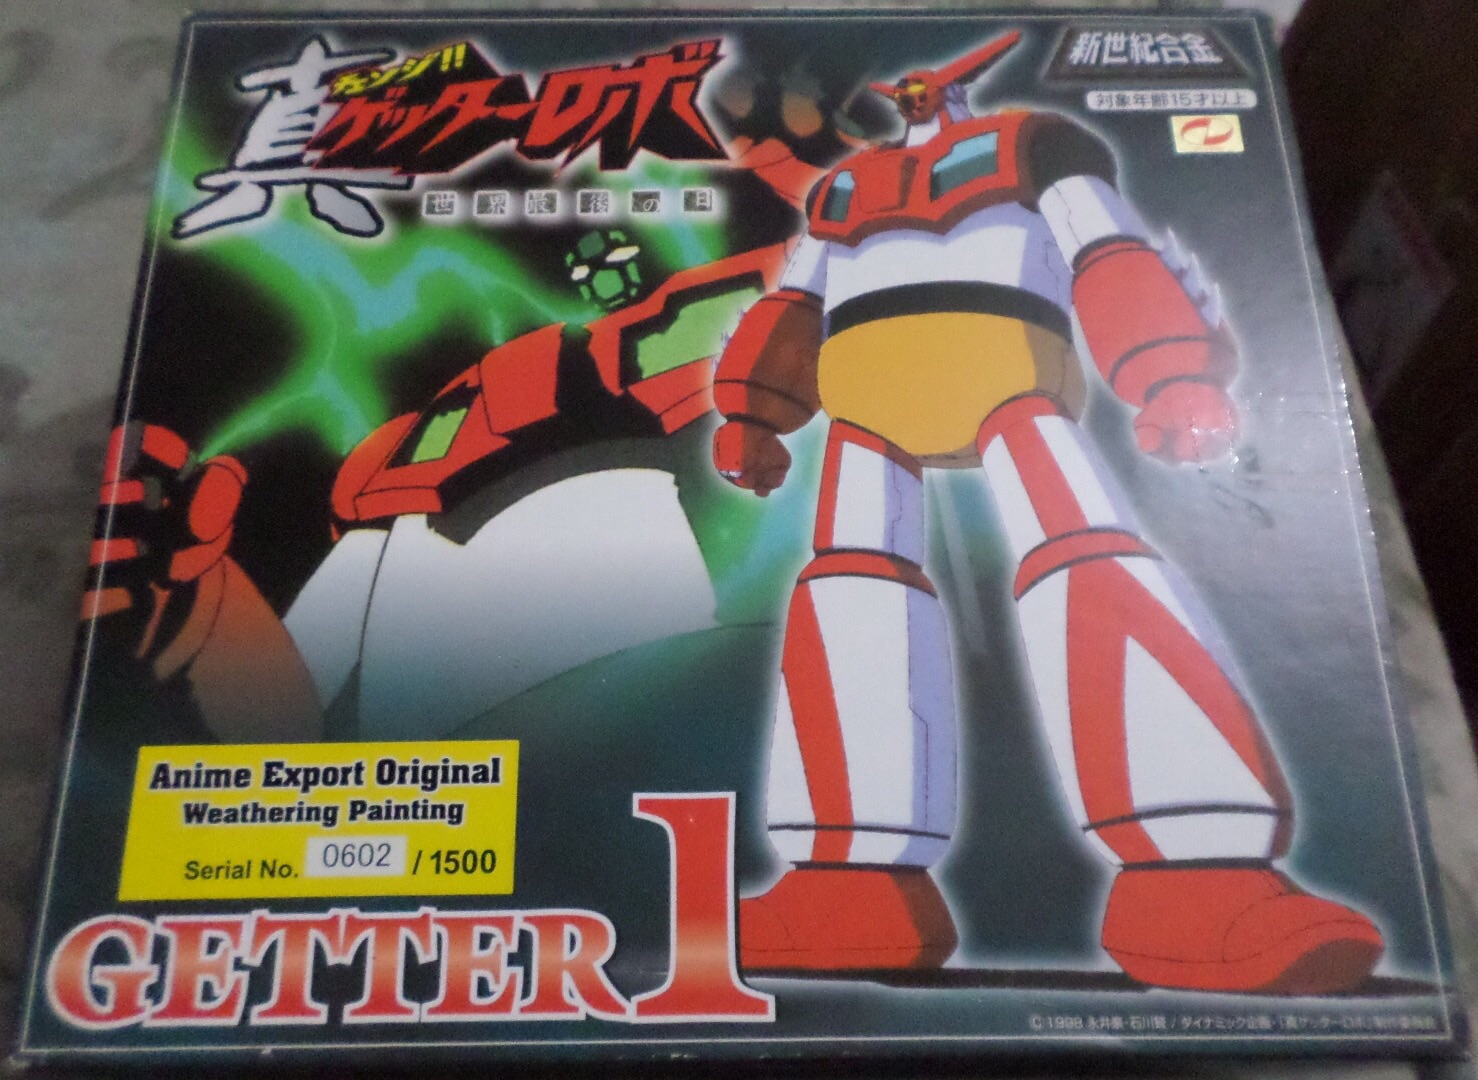 Jual aoshima getter 1 anime export weathering painting limited dazzle toys tokopedia